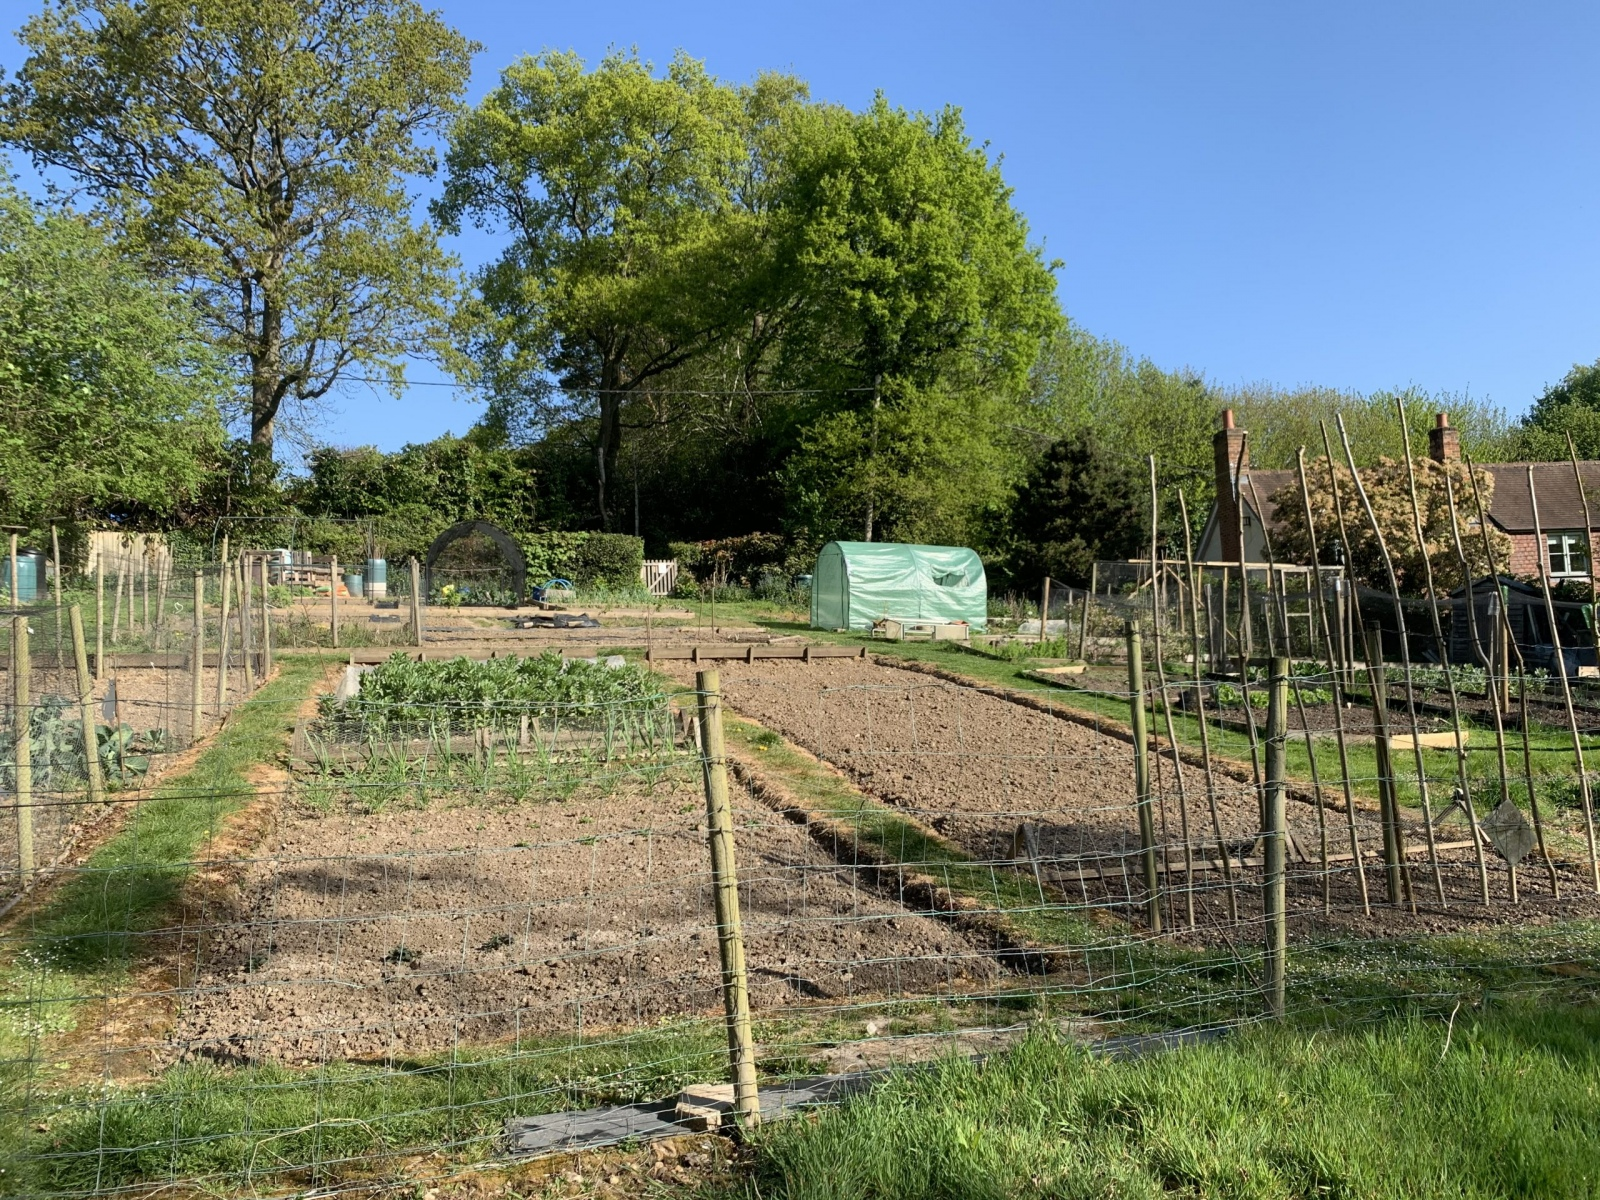 Several allotments are showing with canes and netting on the plots.